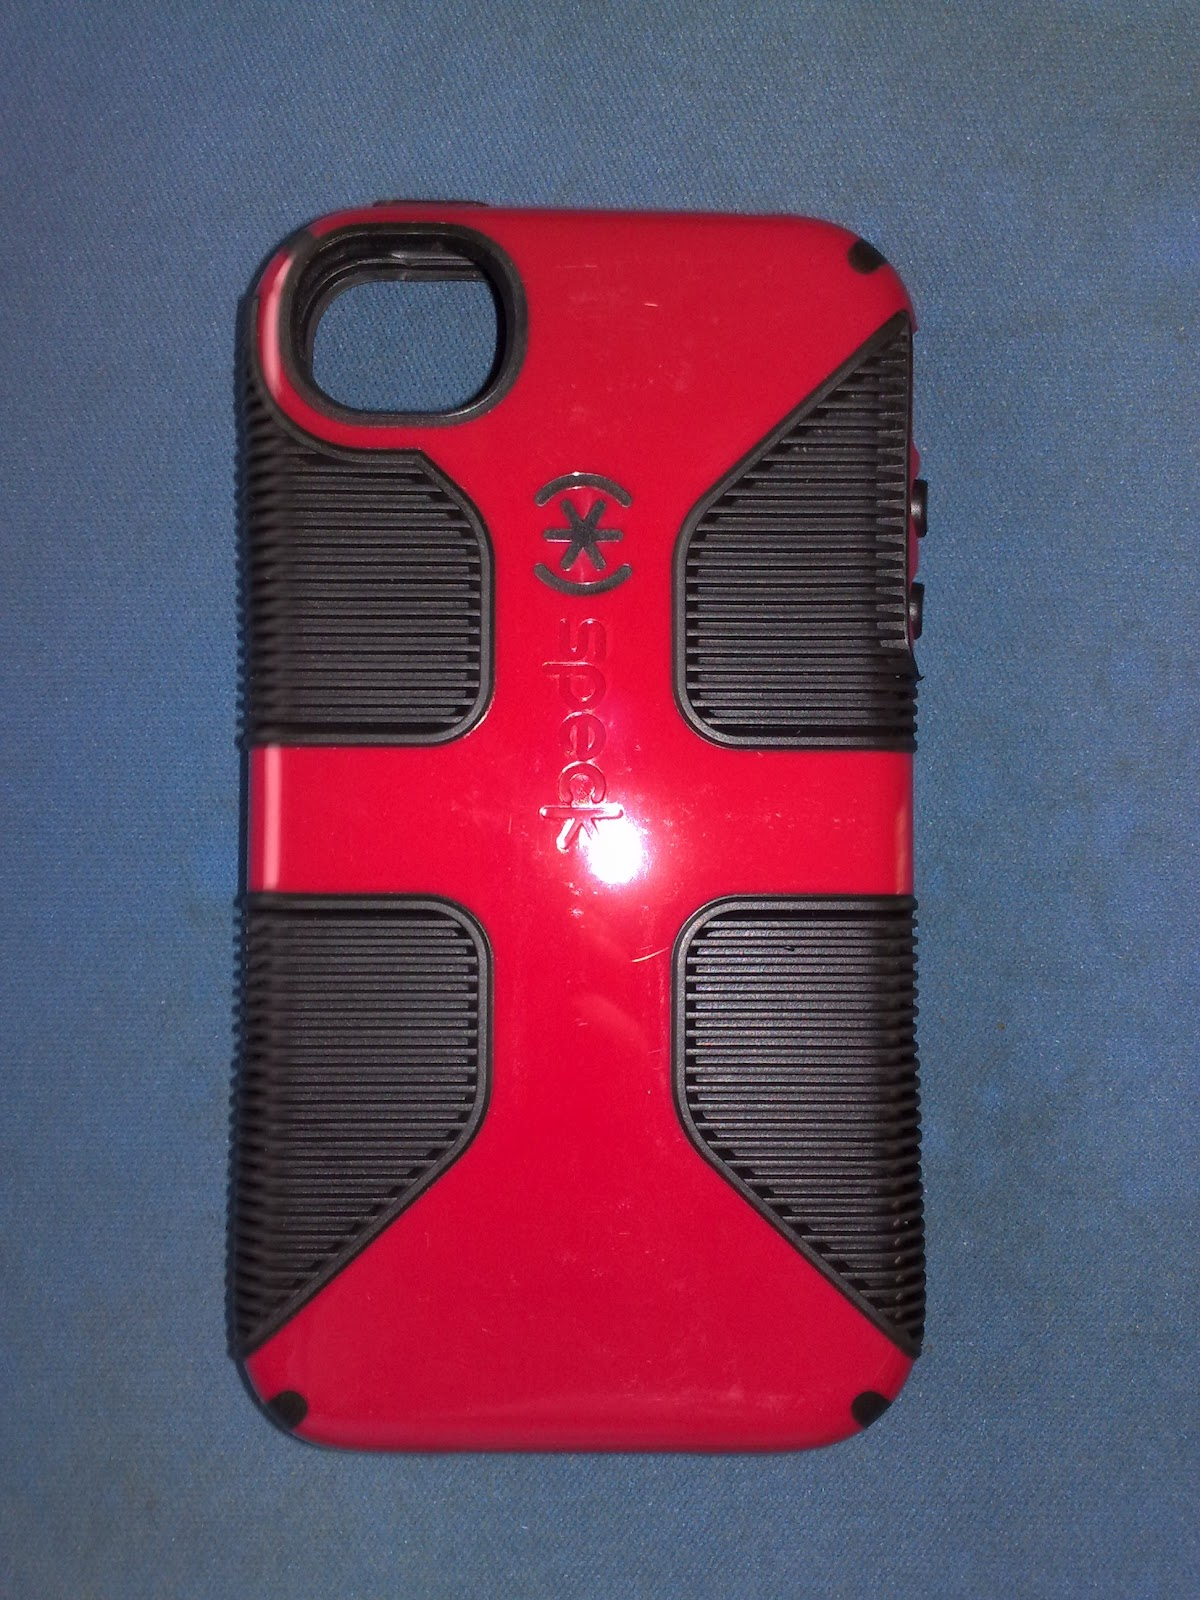 100% authentic 4e495 a6ac4 Review: Speck CandyShell Grip For iPhone 4/4S | Keyables